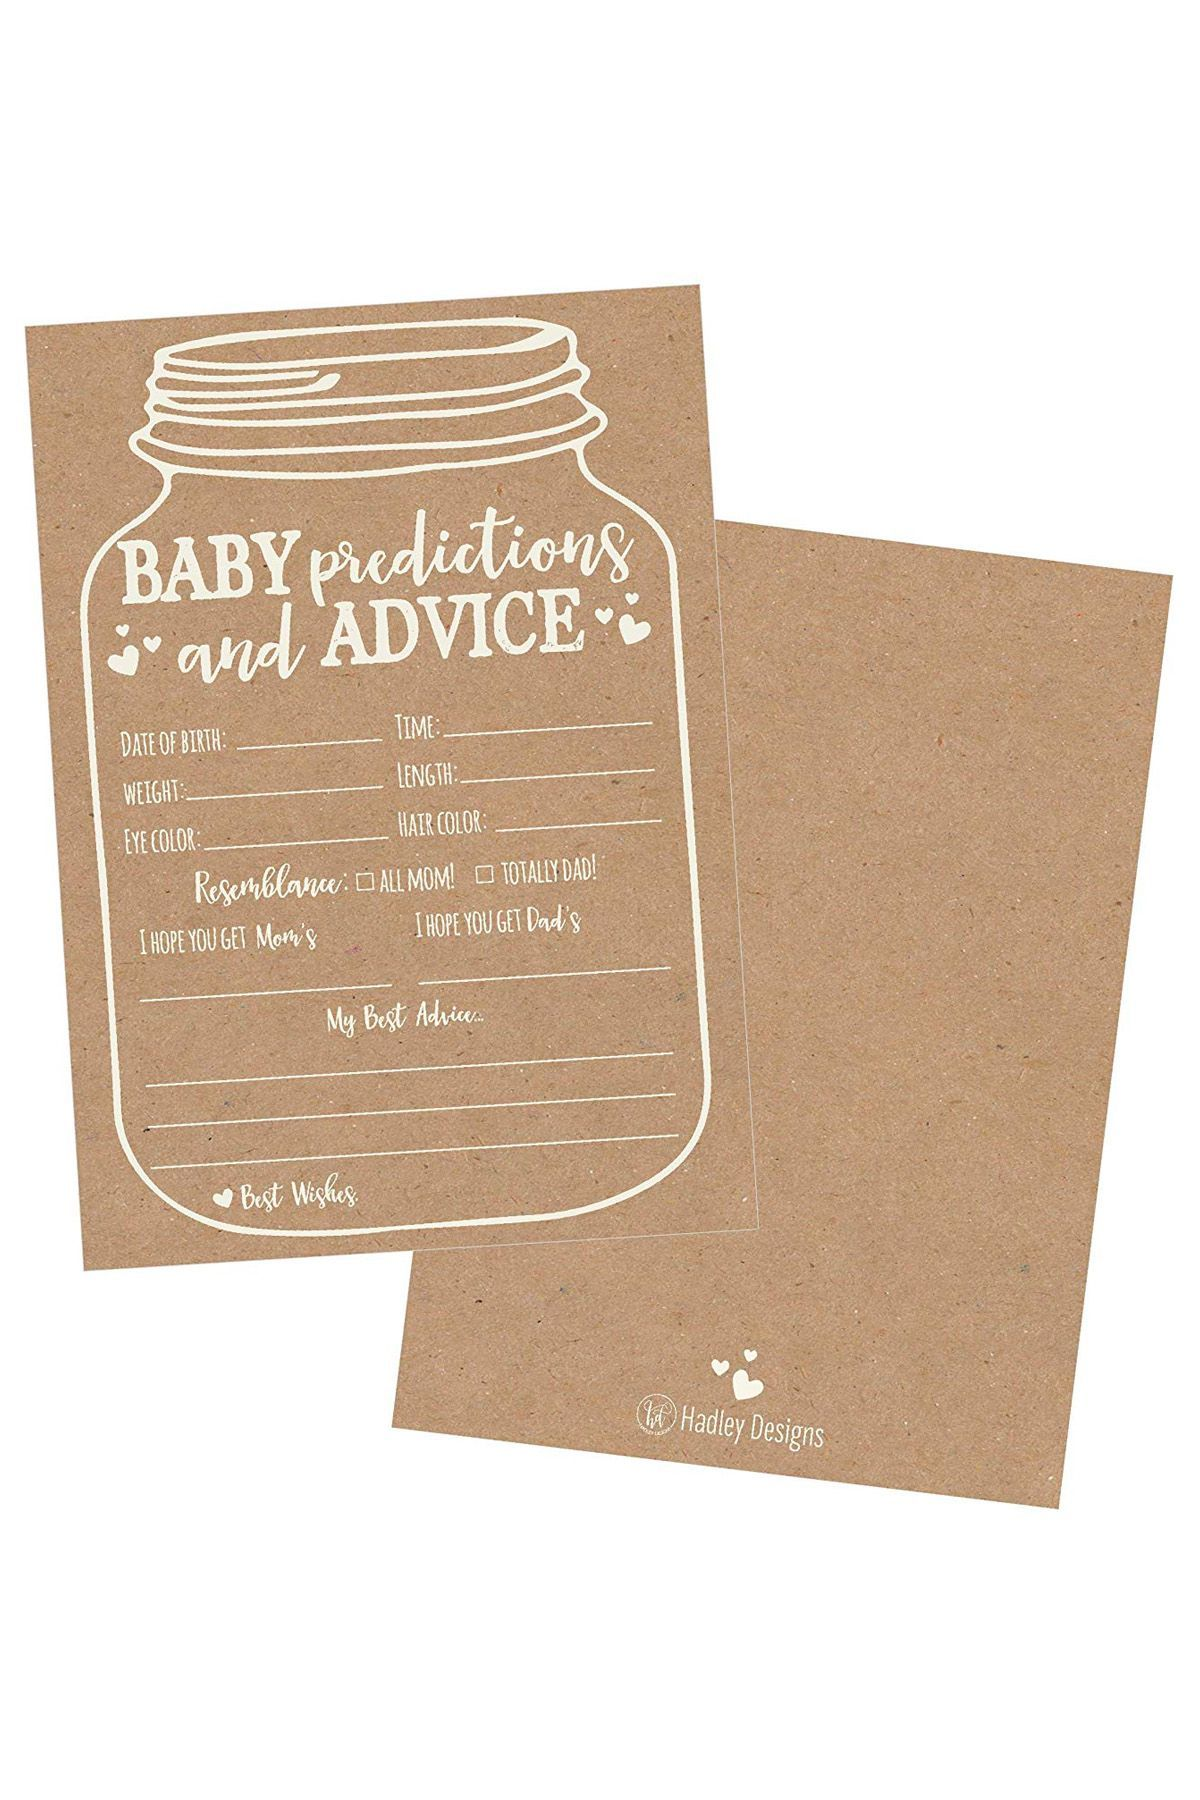 20 Best Baby Shower Ideas Unique Baby Shower Food Games And